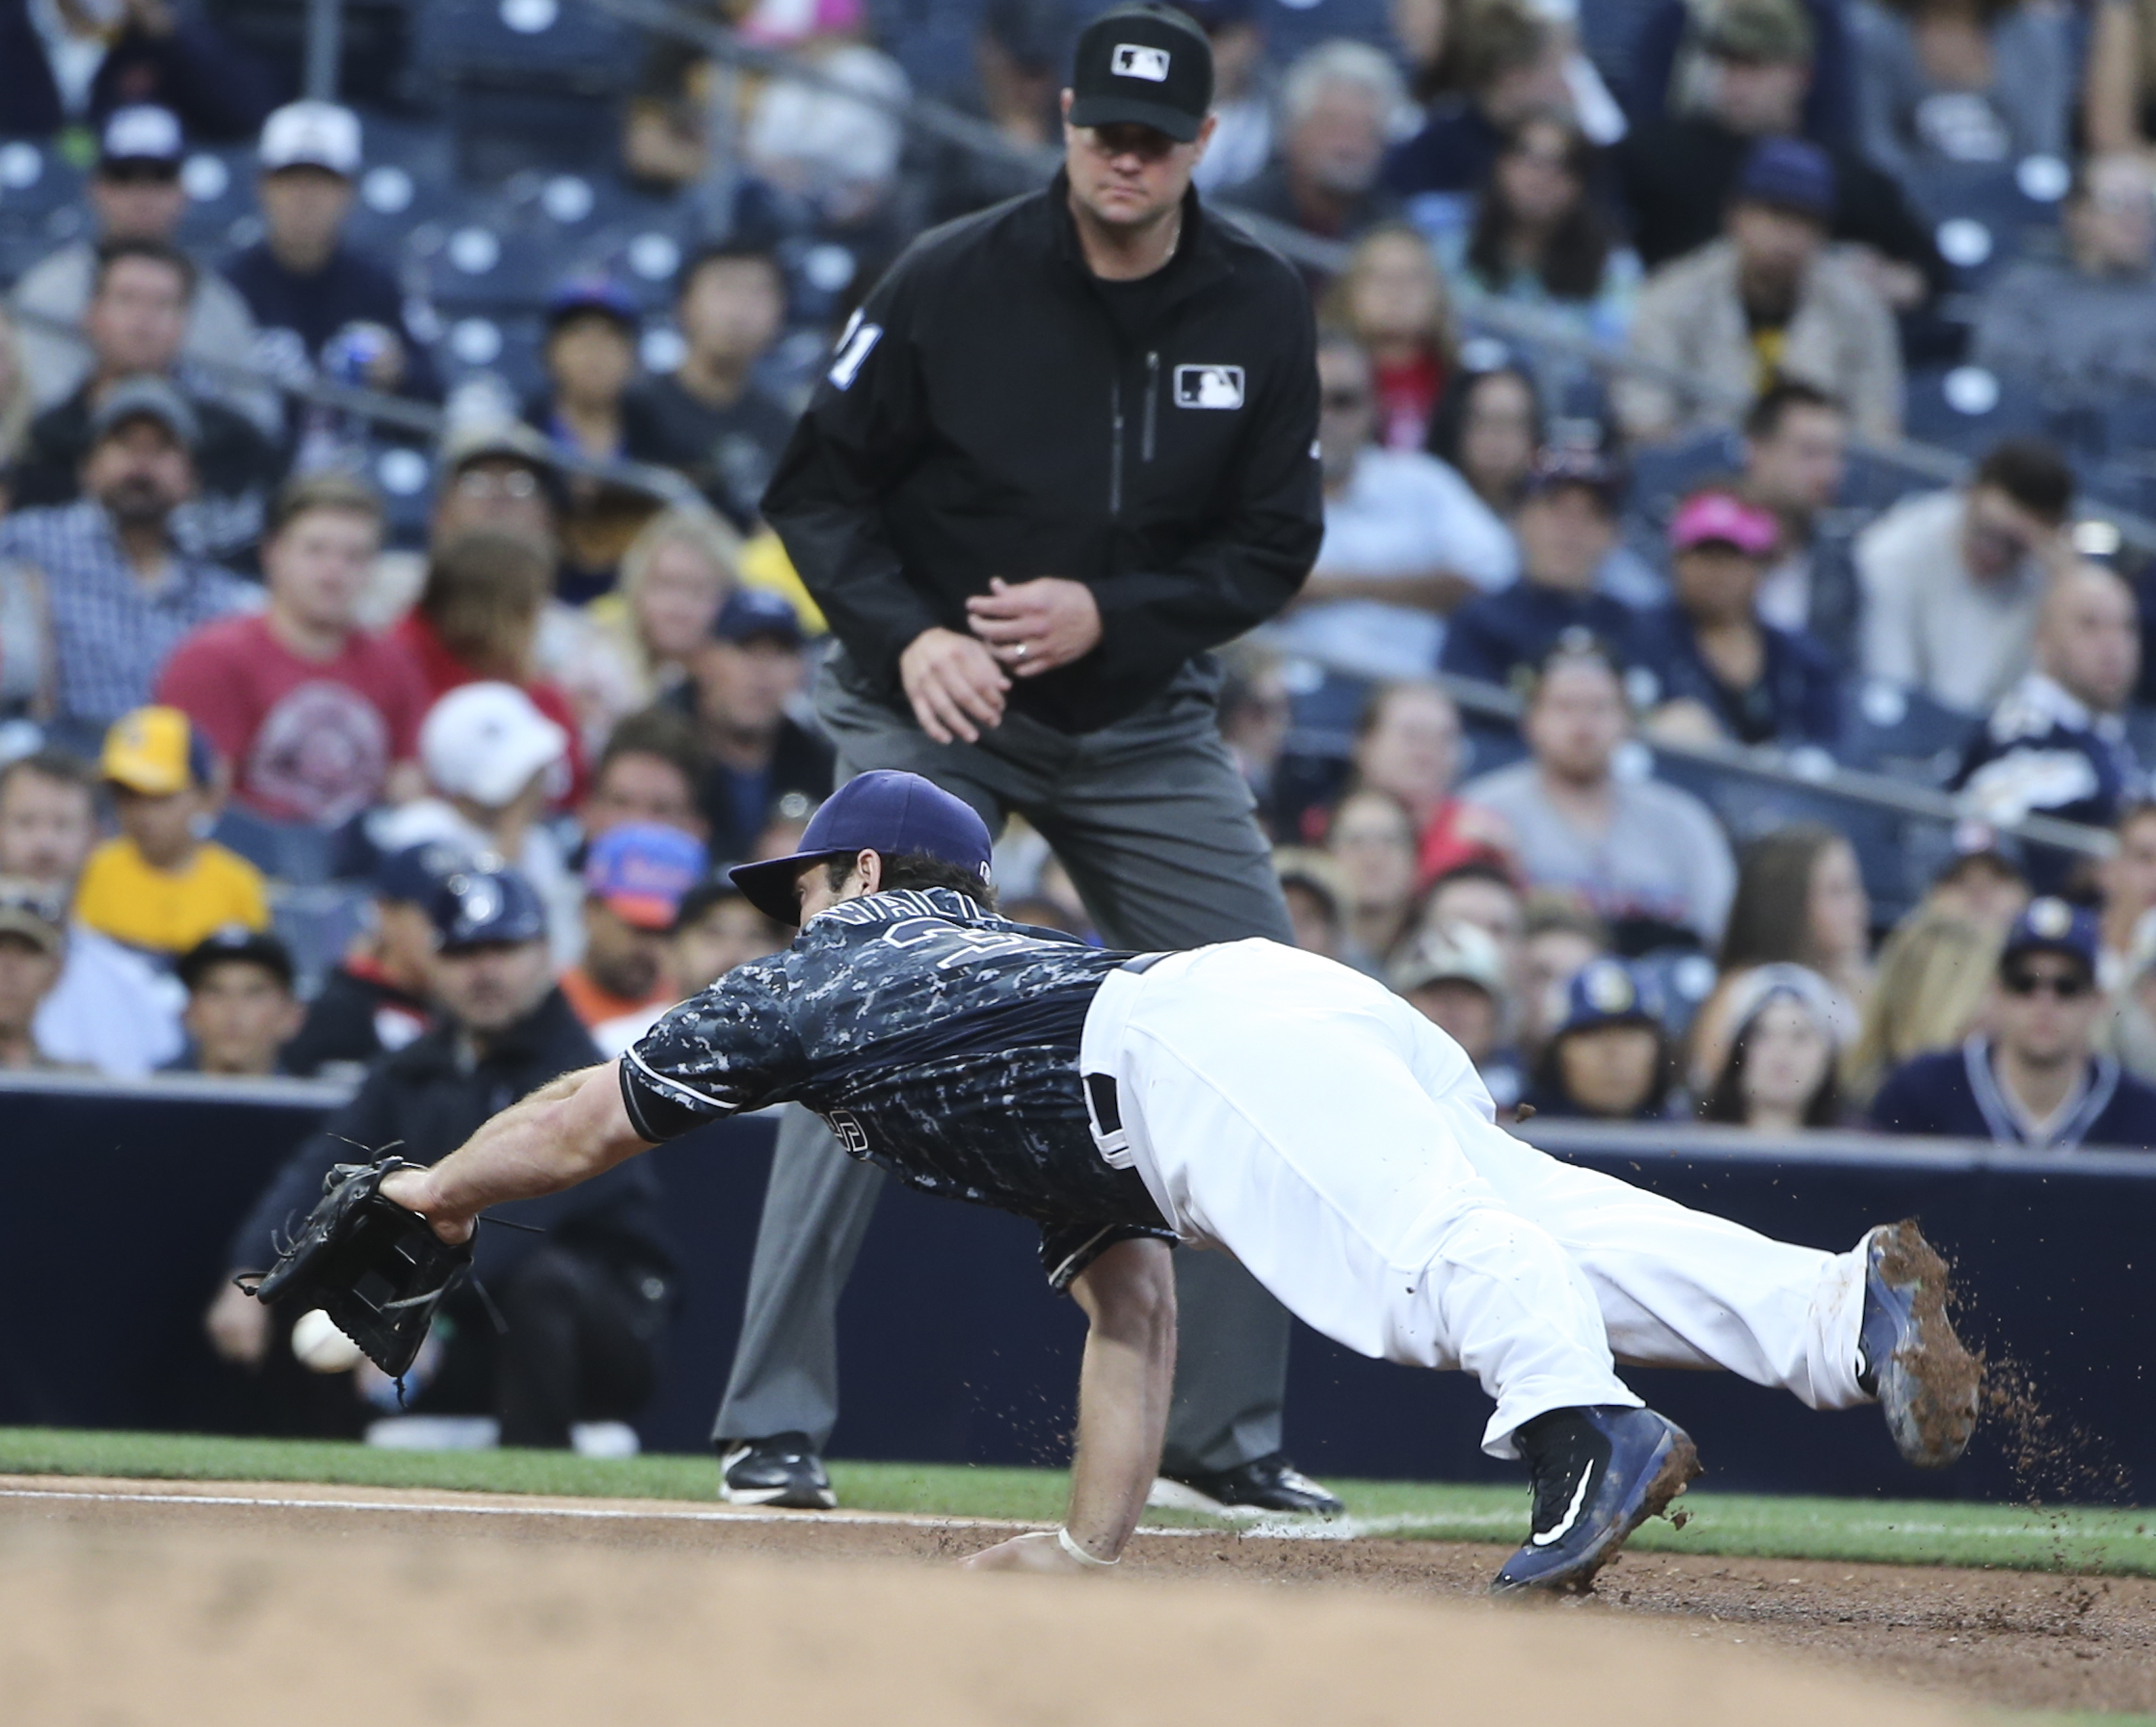 San Diego Padres third baseman Brett Wallace misses on his diving attempt on a ball that went for for a double by Colorado Rockies' Trevor Story in the fifth inning of a baseball game Sunday June 5, 2016 in San Diego. The double drove in a run. (AP Photo/